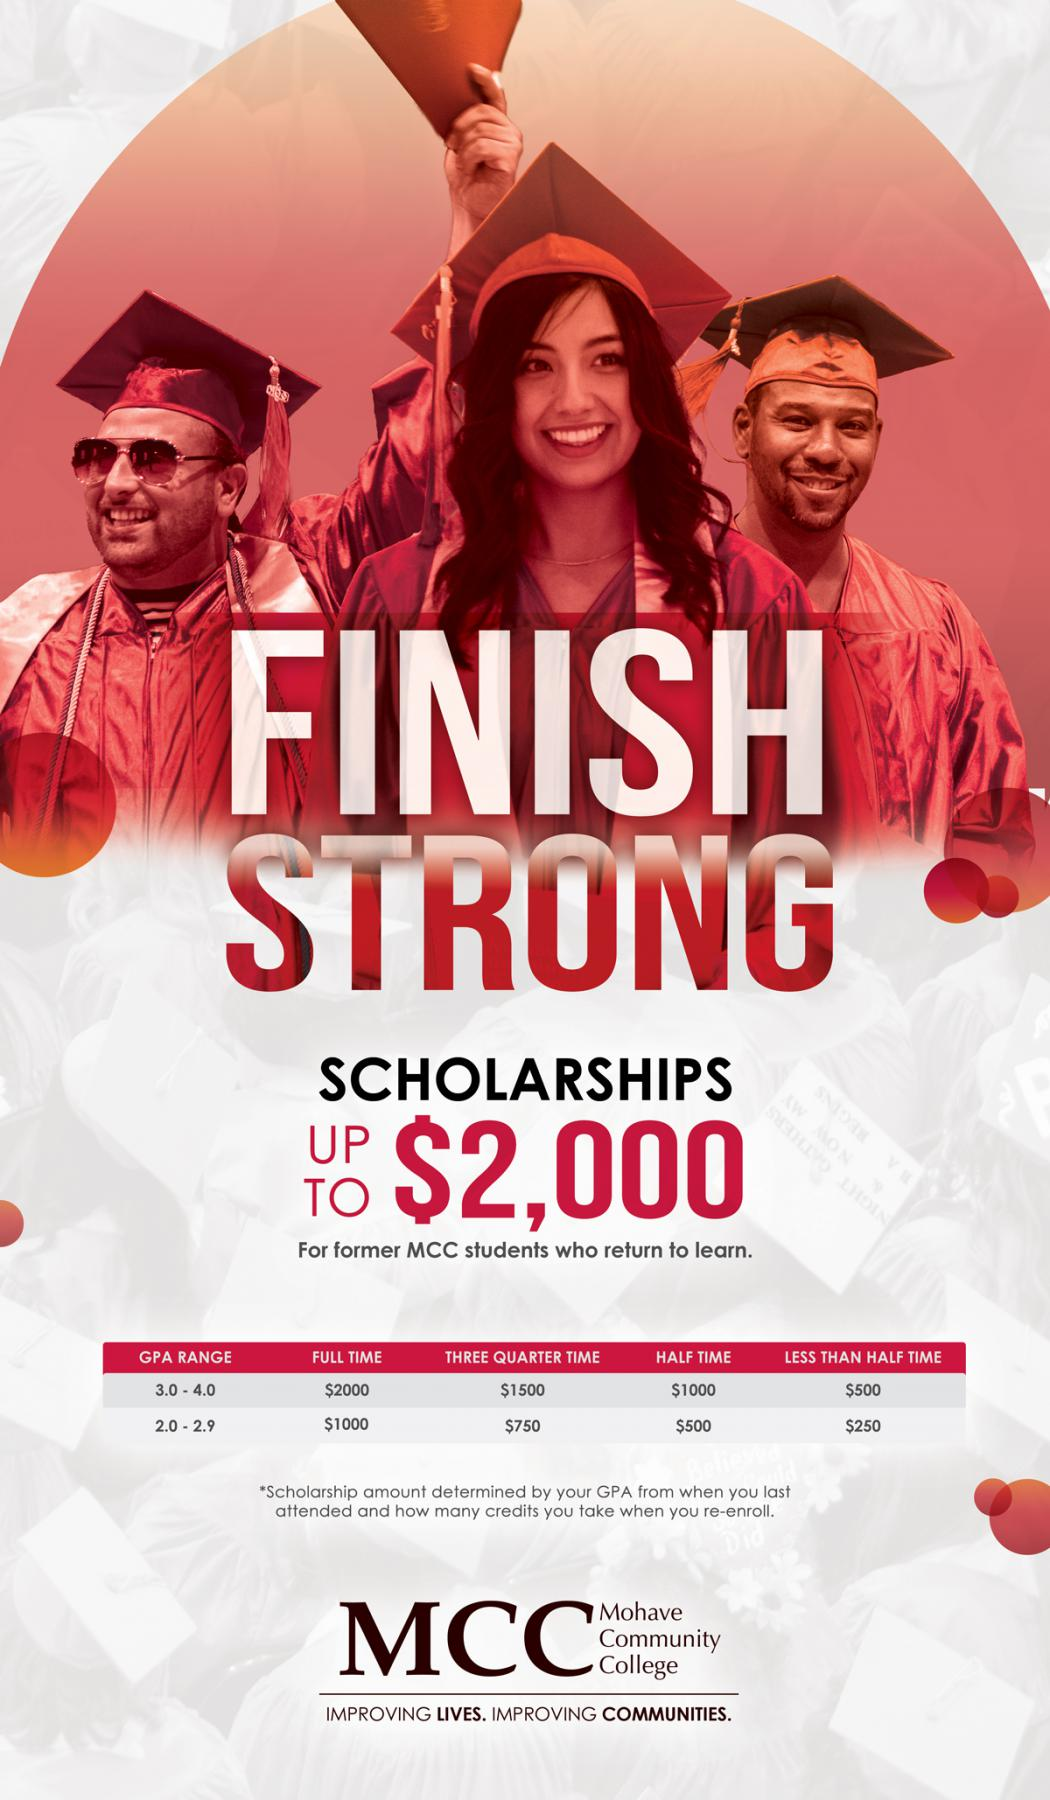 finish strong scholarshipp call 866 mohavecc for more info